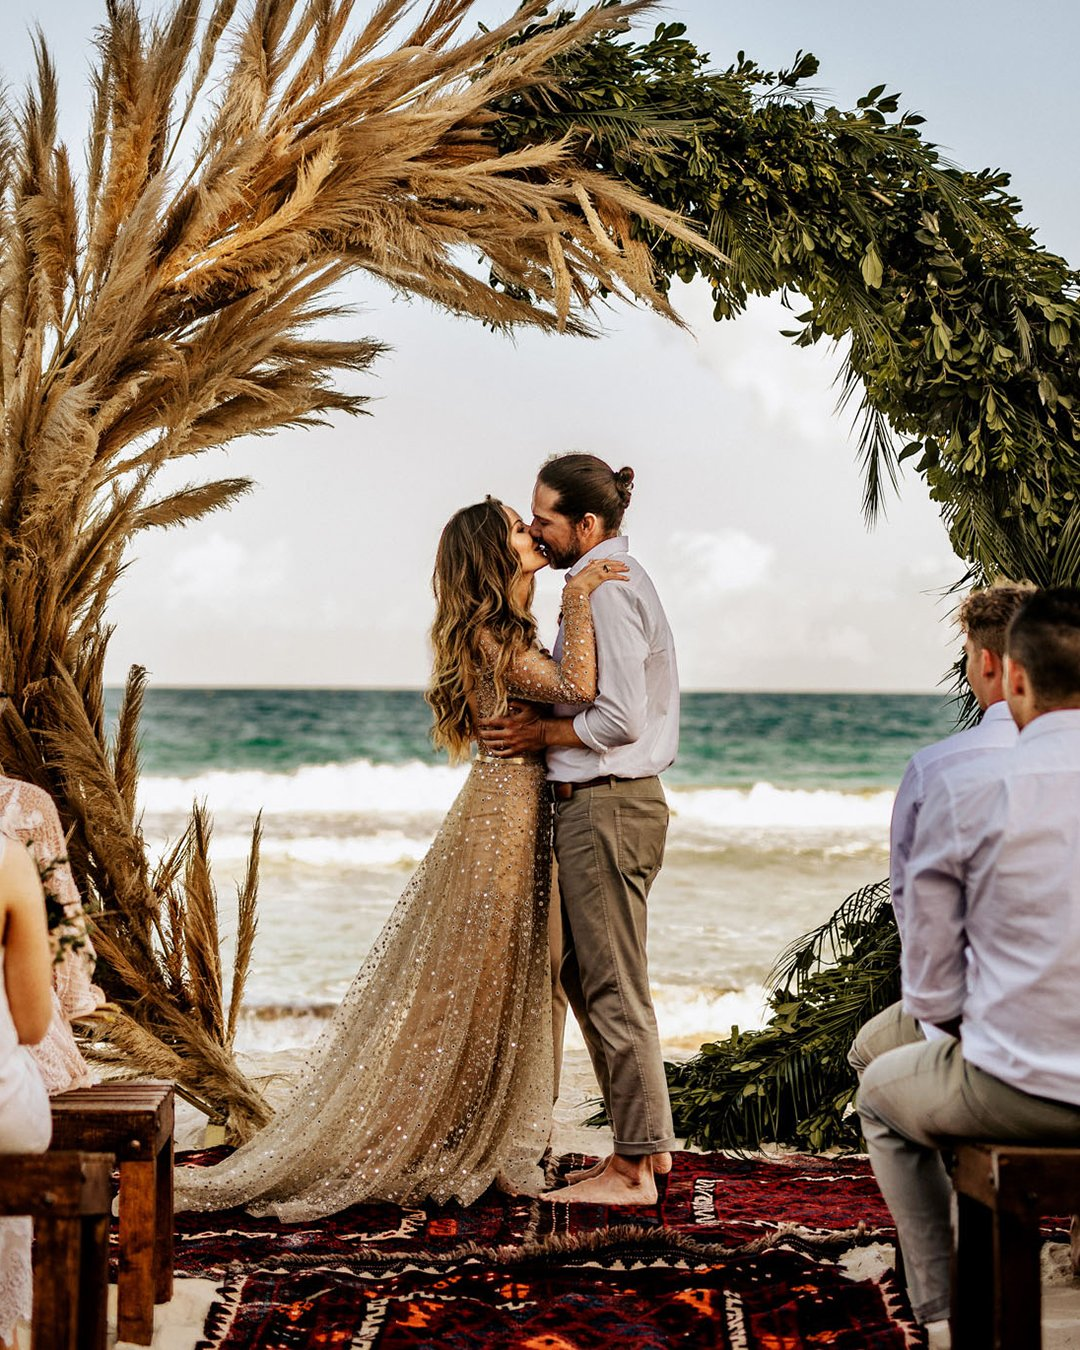 popular instagram posts 2020 boho beach ceremony chris ruth photography